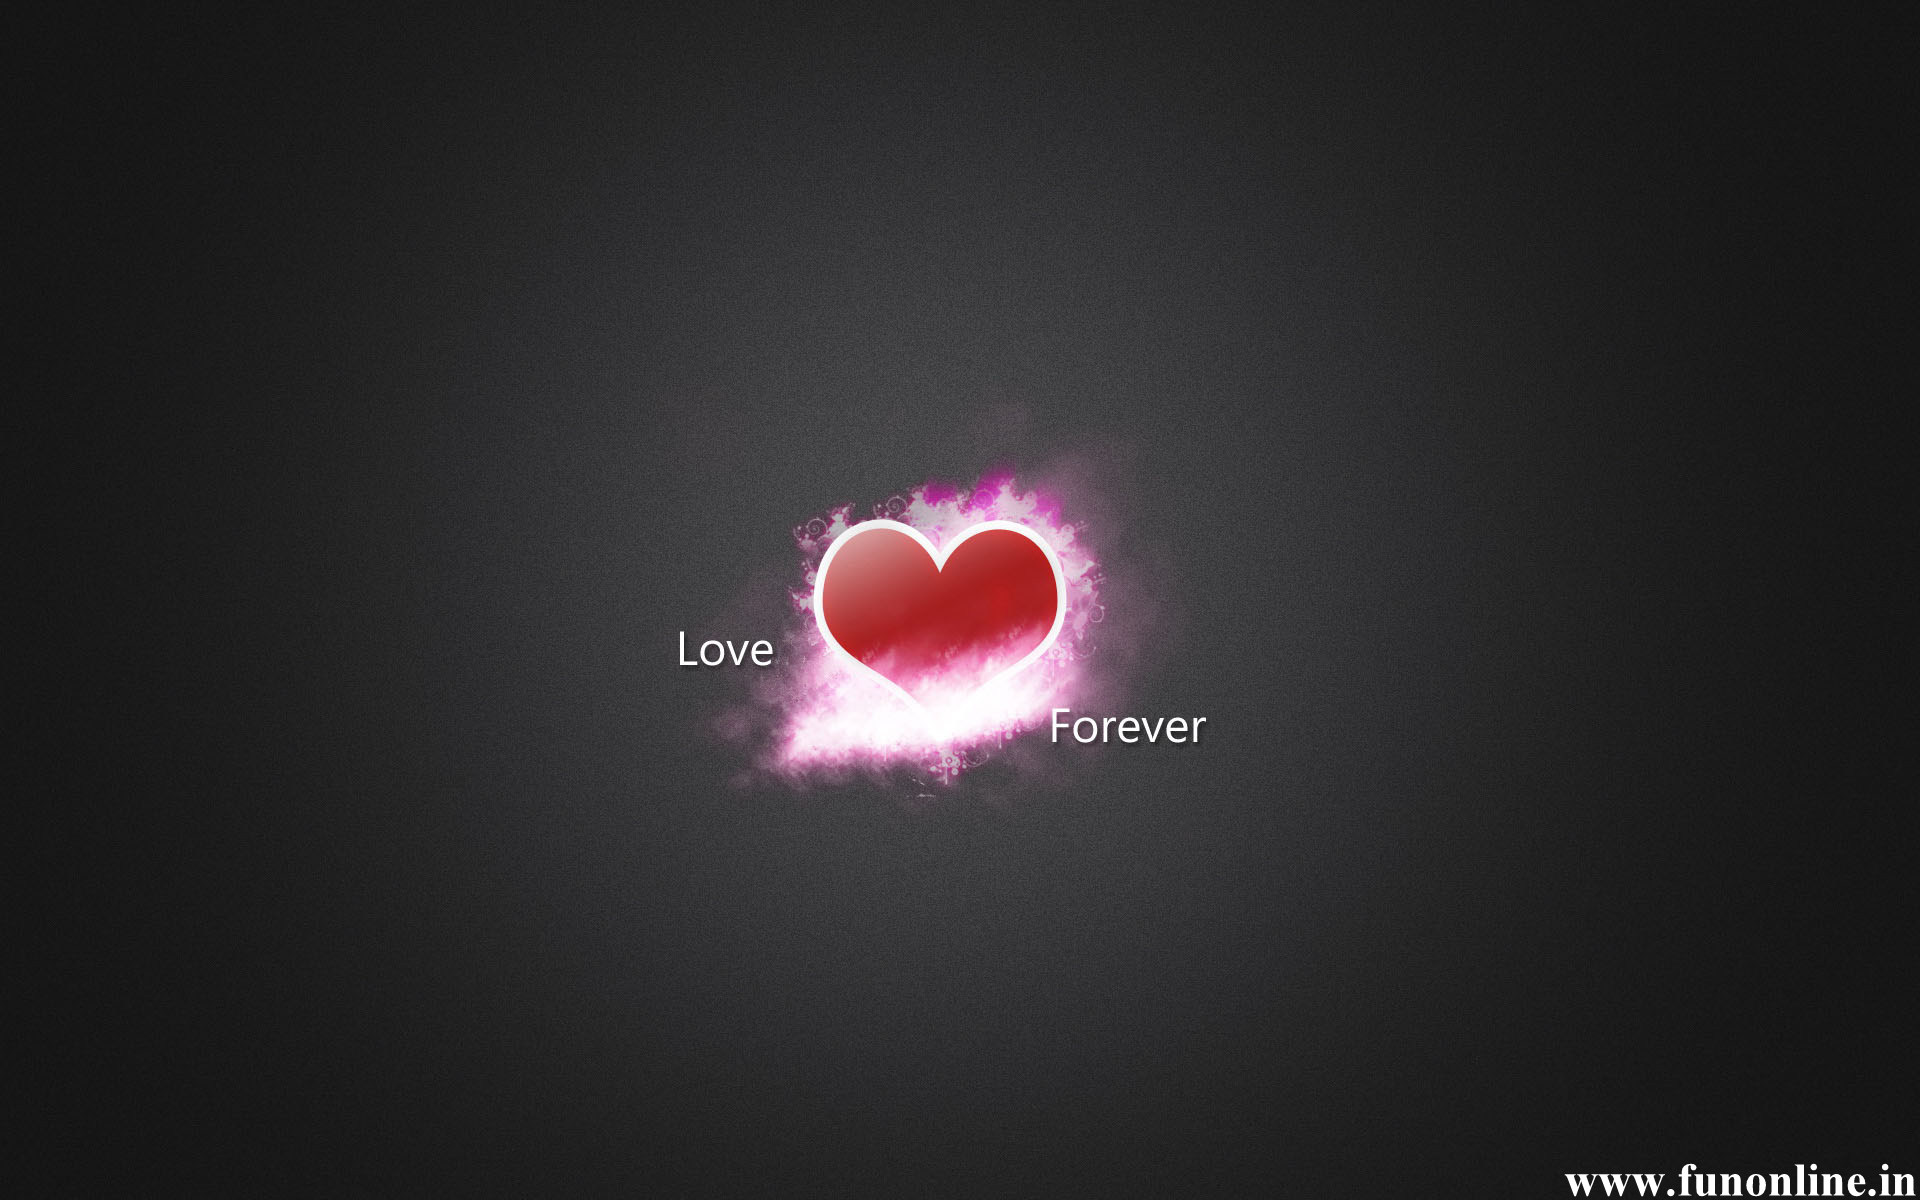 Forever Wallpapers Wallpapersafari